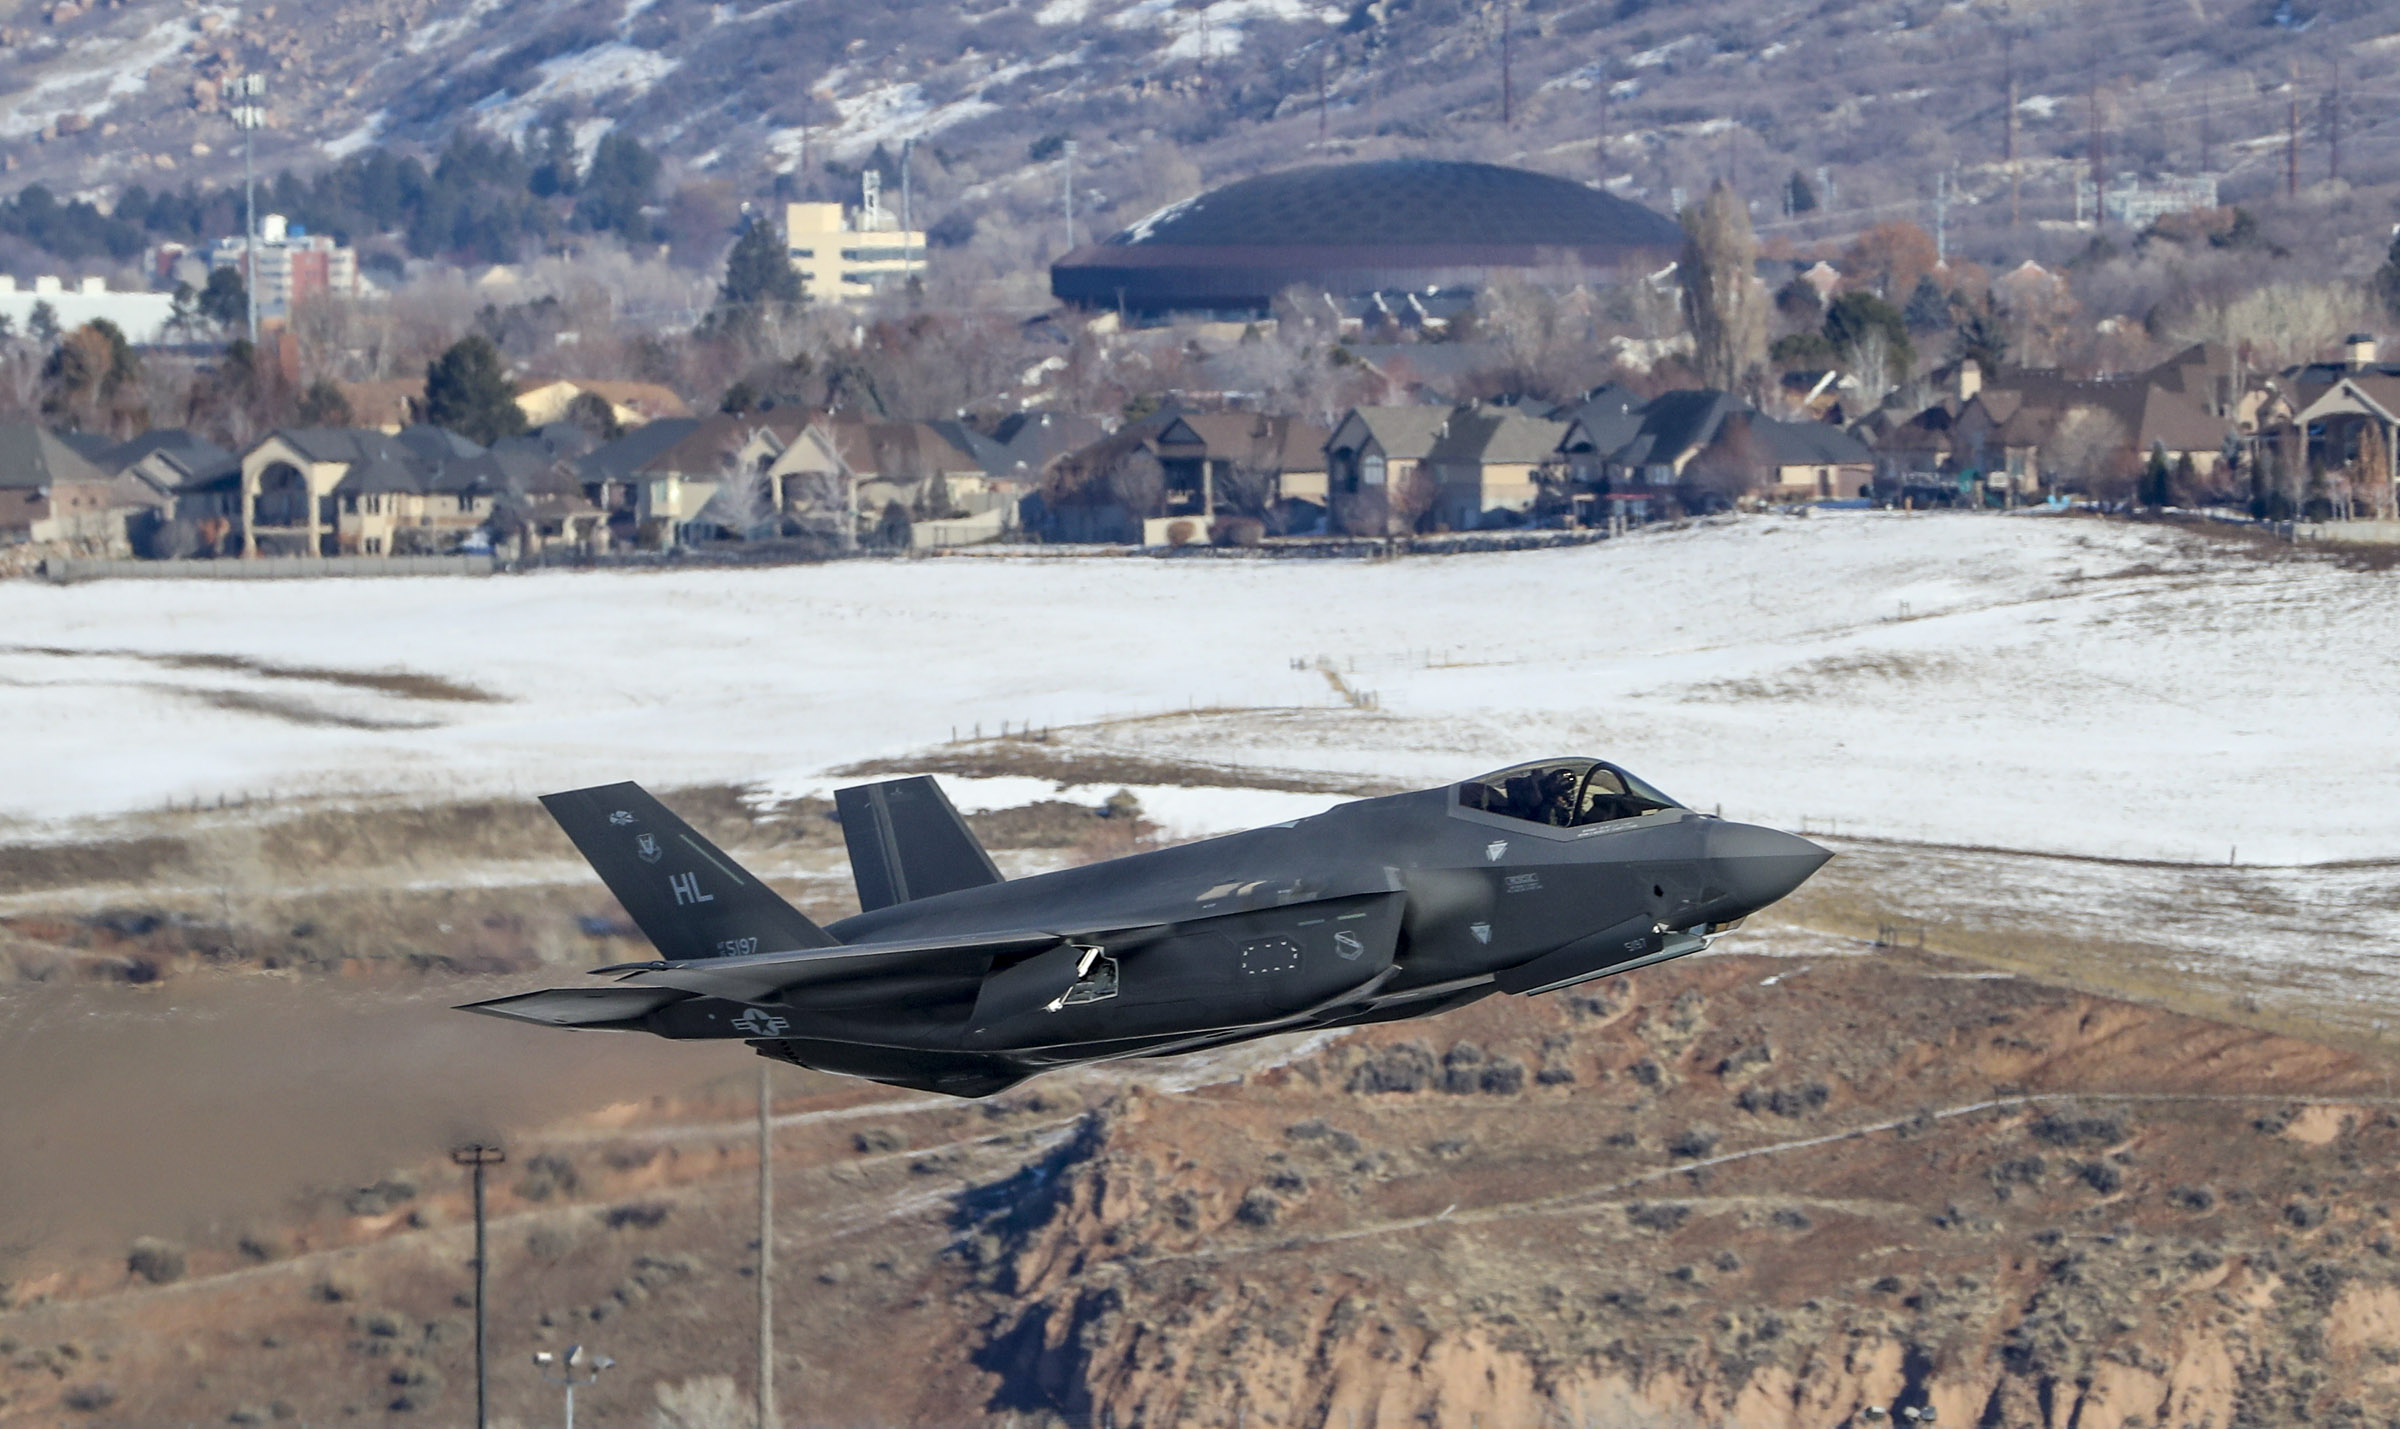 An F-35A Lightning II from Hill Air Force Base's 388th and 419th fighter wings climbs into the sky during a combat power exercise at the base near Ogden on Monday, Jan. 6, 2020. During the exercise, 52 F-35A Lightning IIs launched within a condensed period of time.